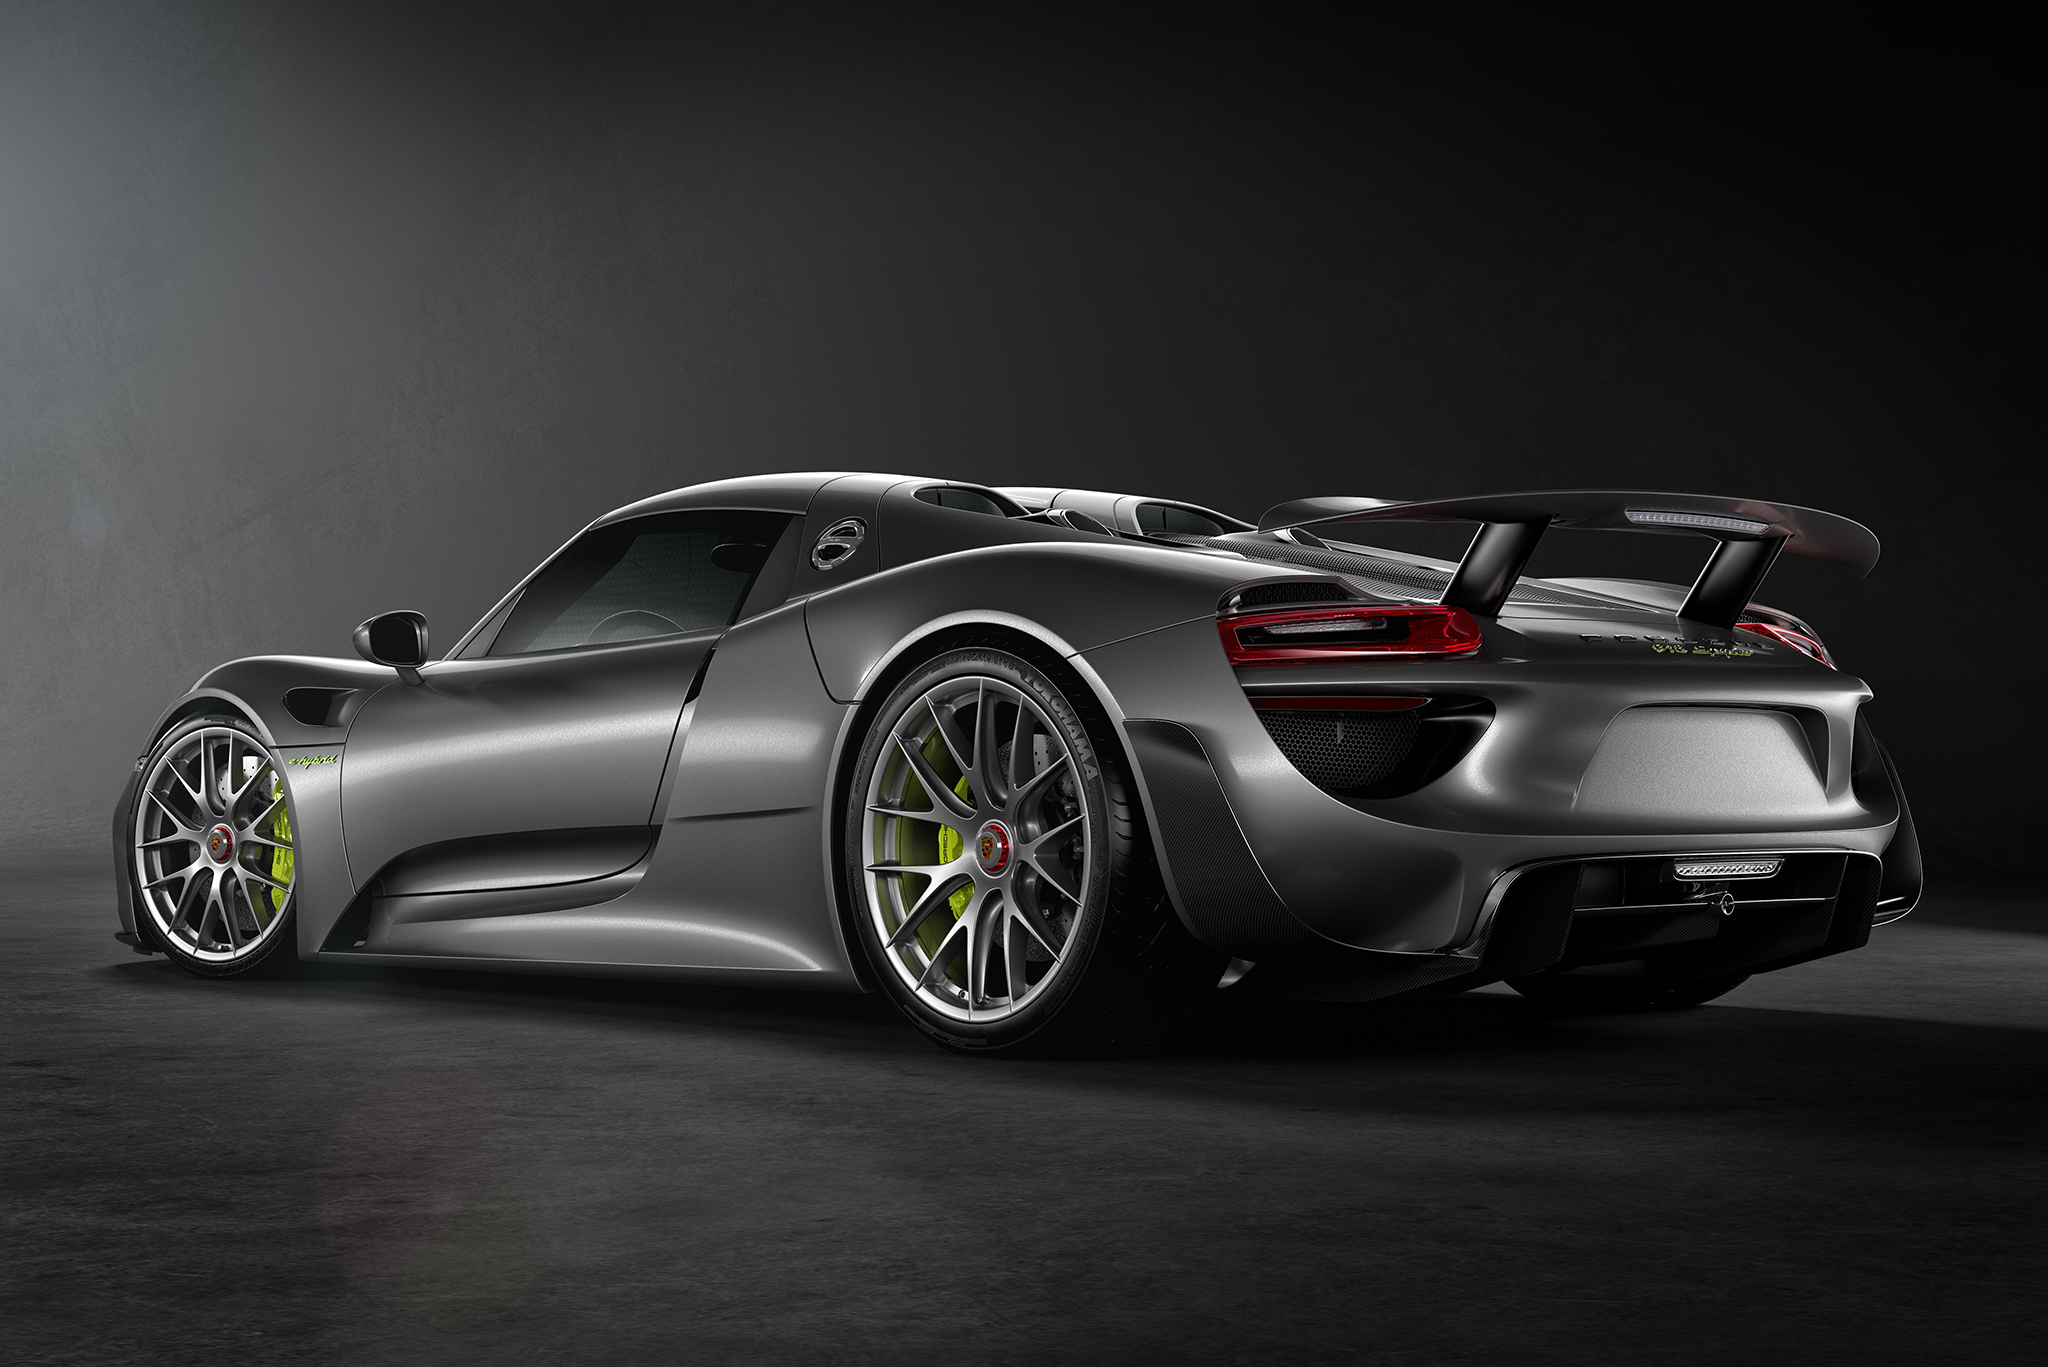 100 porsche 918 spyder white iphone se vehicles porsche 918 spyder wallpaper id 632102. Black Bedroom Furniture Sets. Home Design Ideas